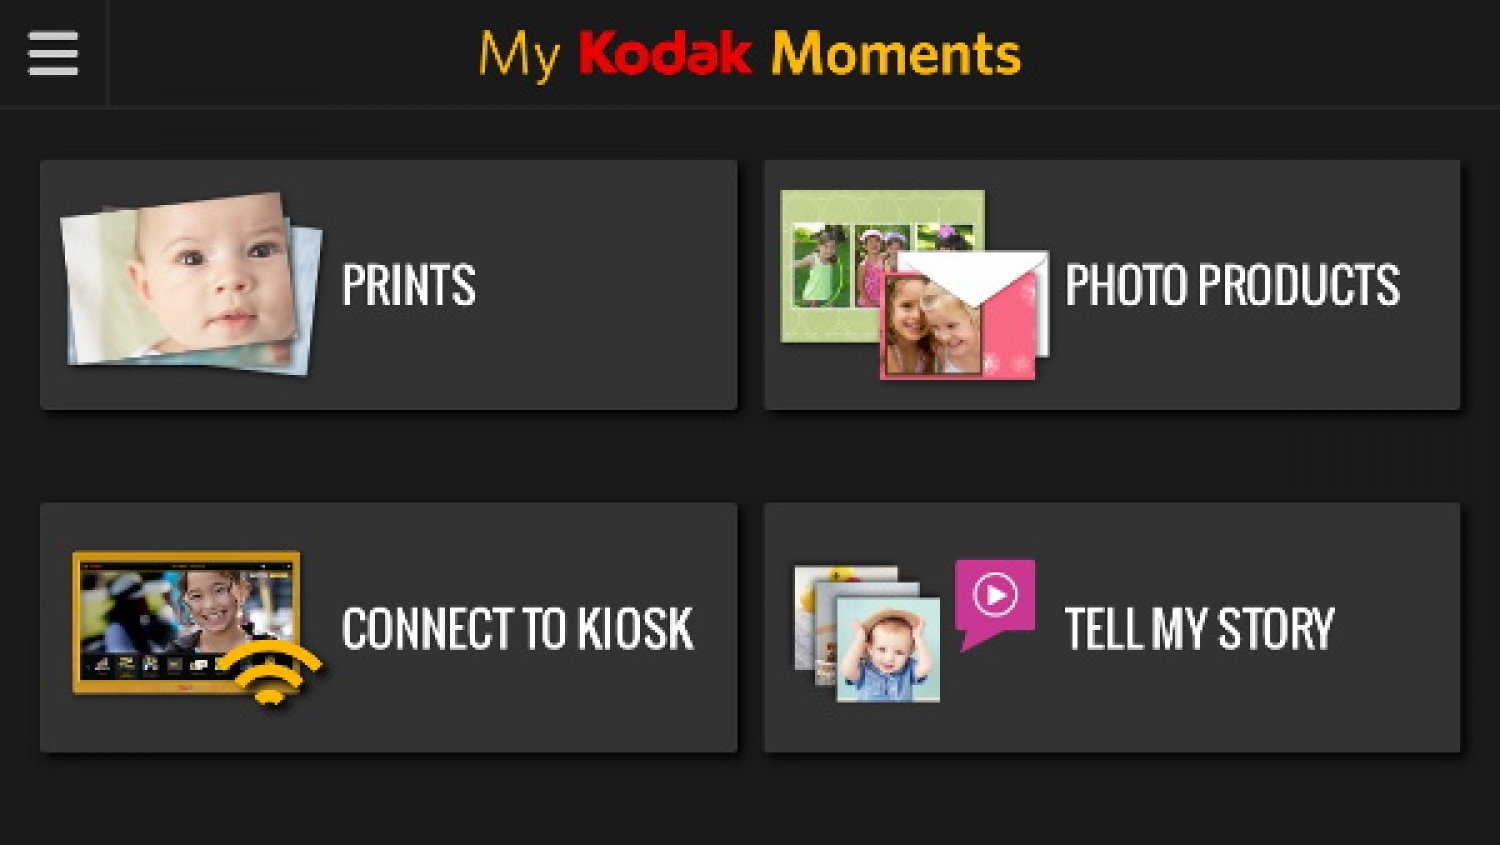 Kodak Moments aplicacion 005